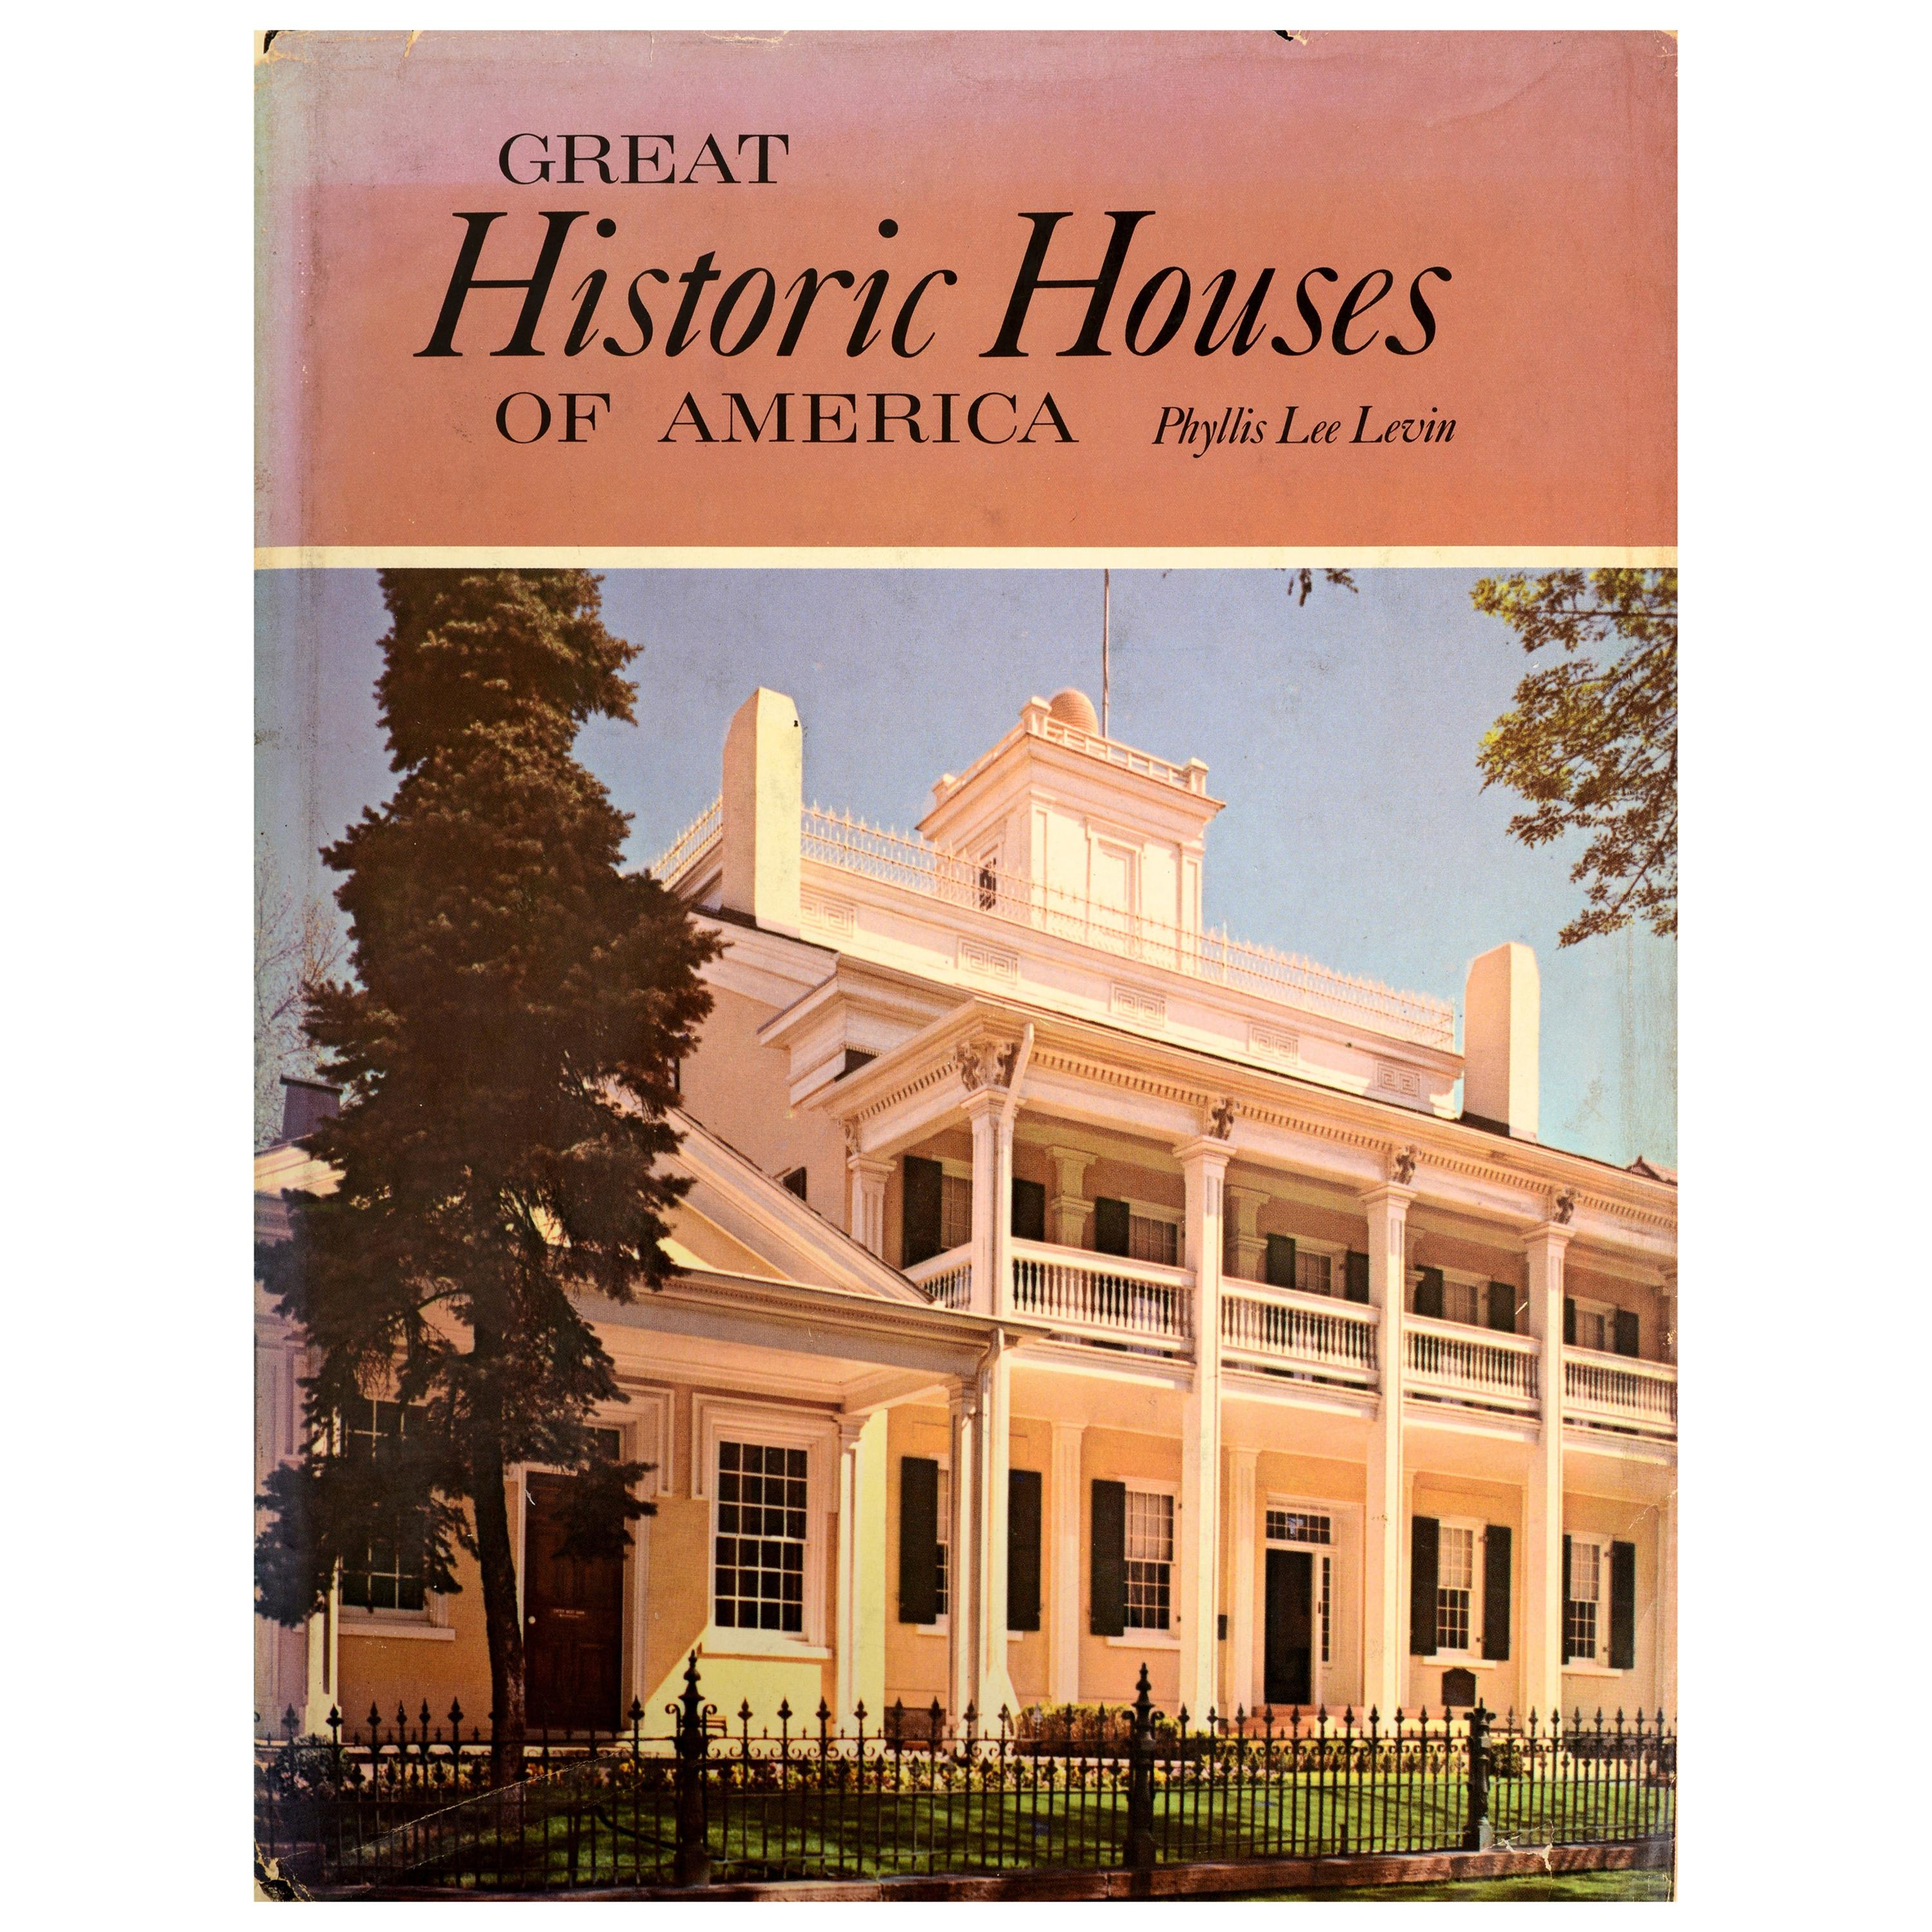 Great Historic Houses of America by Phyllis Lee Levin, 1st Ed